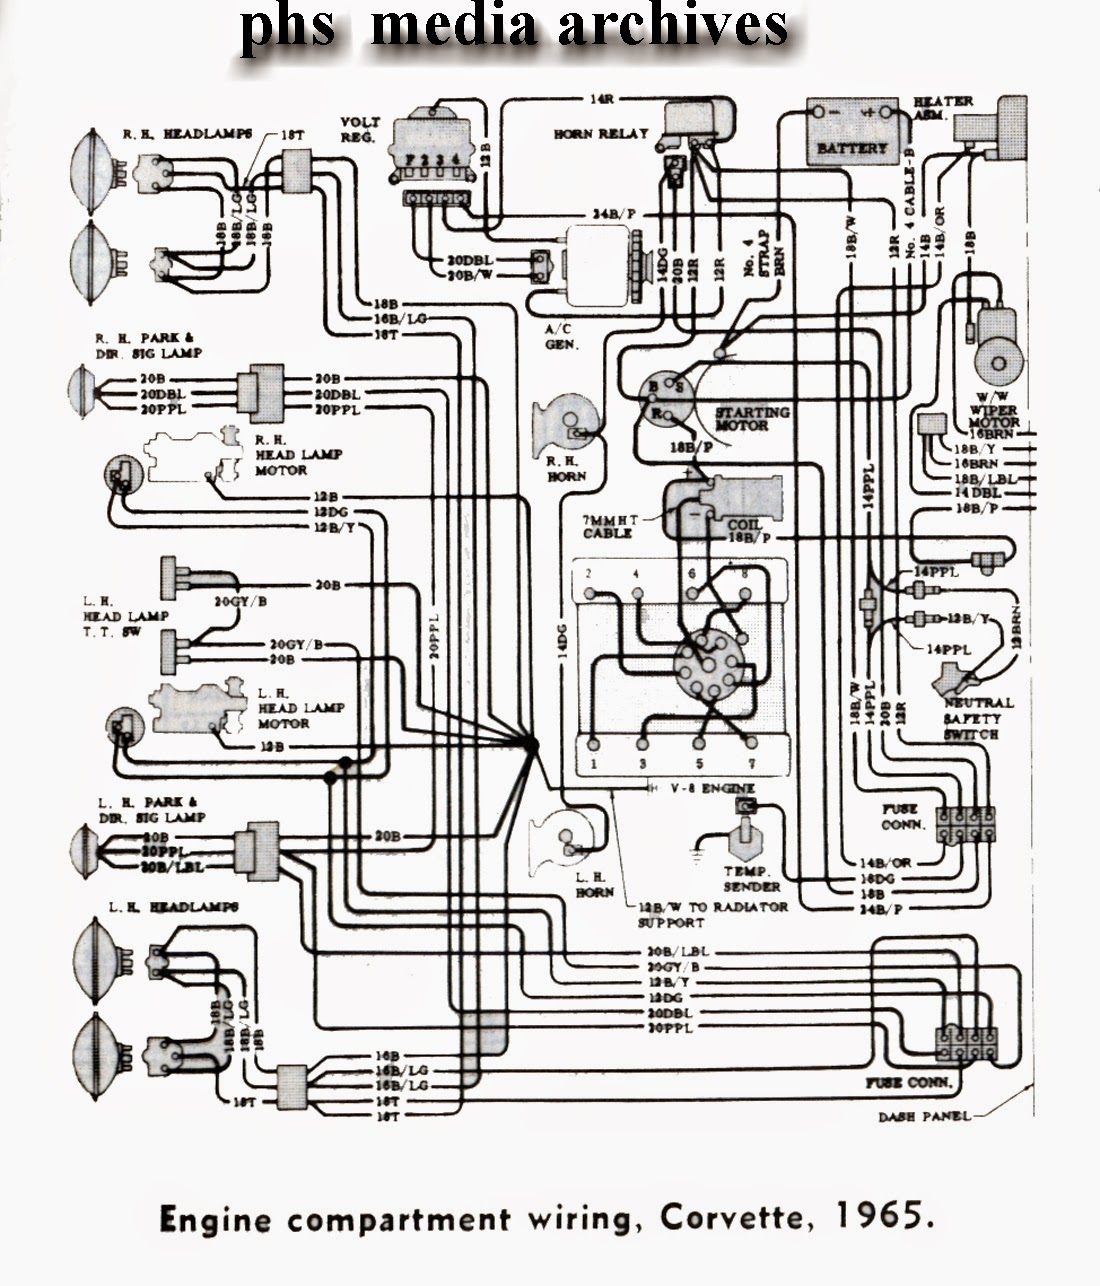 76 Pontiac Trans Am Starter Wiring Diagram Library. Fuse Box Wiring Diagram 76 Corvette Opinions About \u2022 1976 Chevy C60. Wiring. 76 Camaro Wiring Diagram At Scoala.co